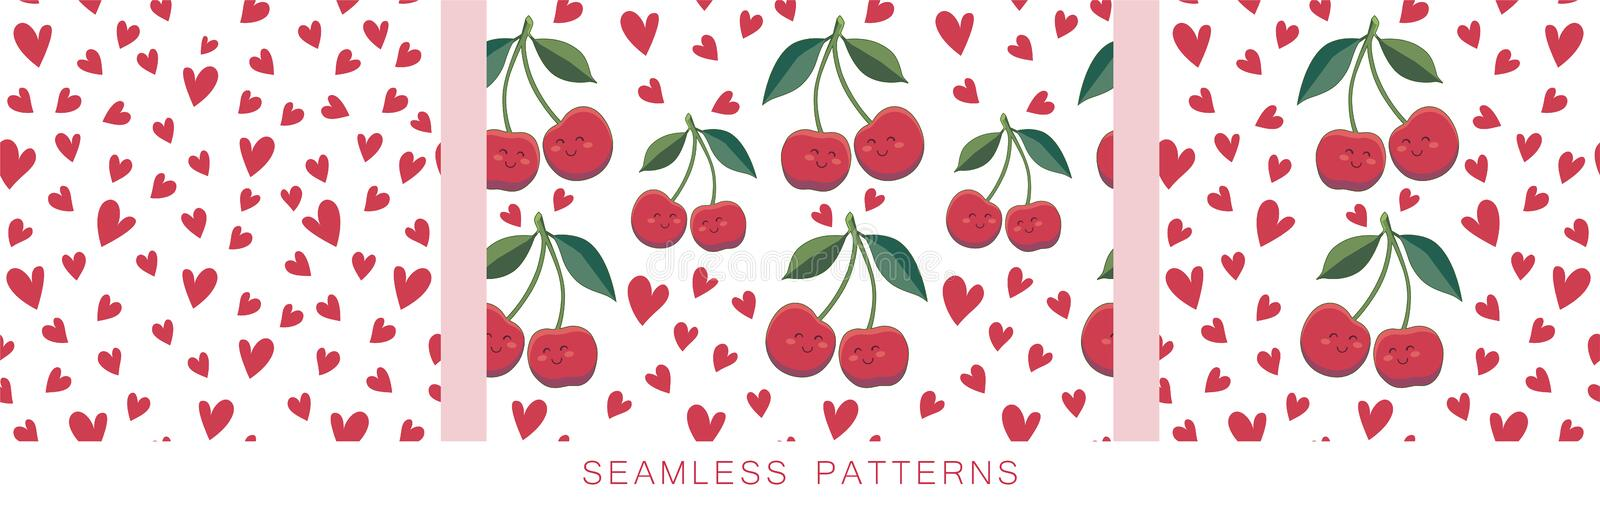 Positive backgrounds. Vector seamless pattern with red hearts and cherries repeated on white. Endless texture. Cute vector illustration